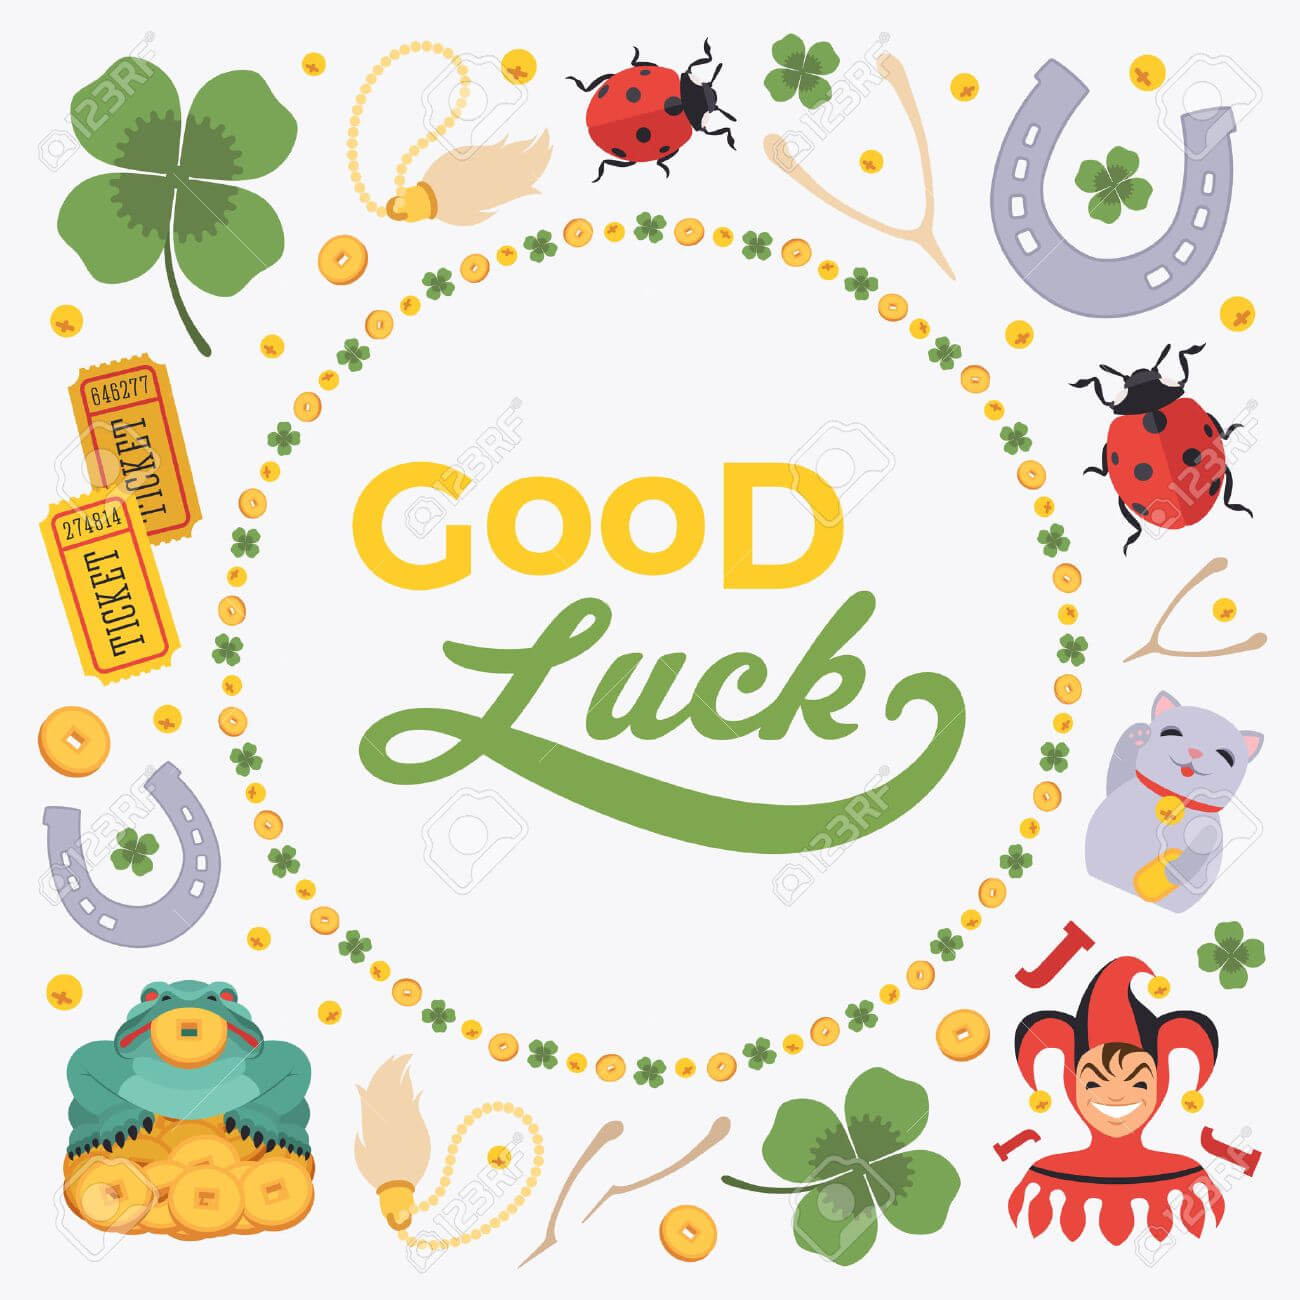 Vector Decorating Design Made Of Lucky Charms, And The Words.. regarding Good Luck Card Template